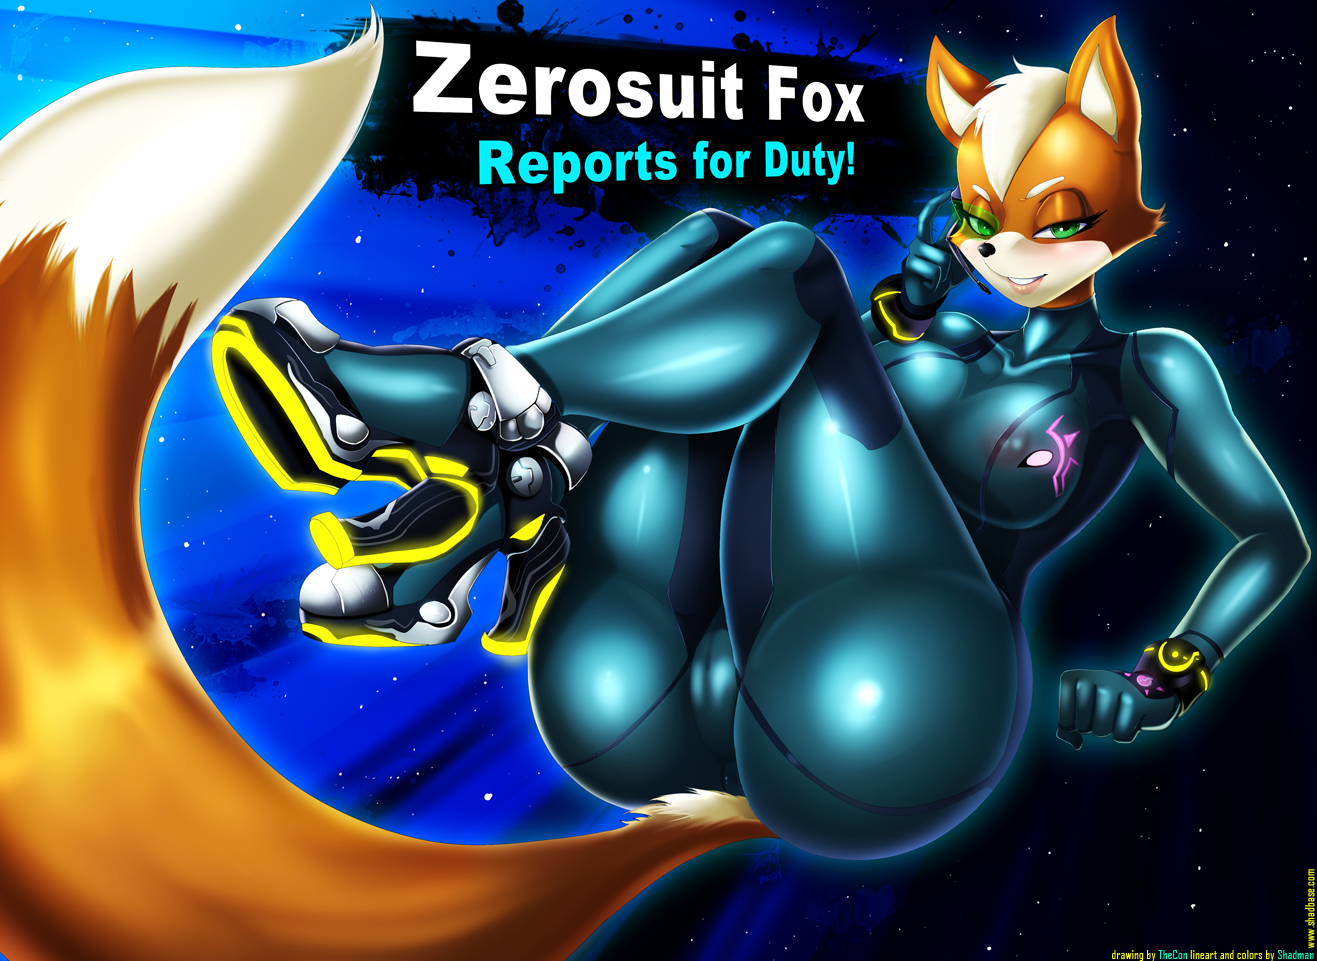 Zerosuit Fox